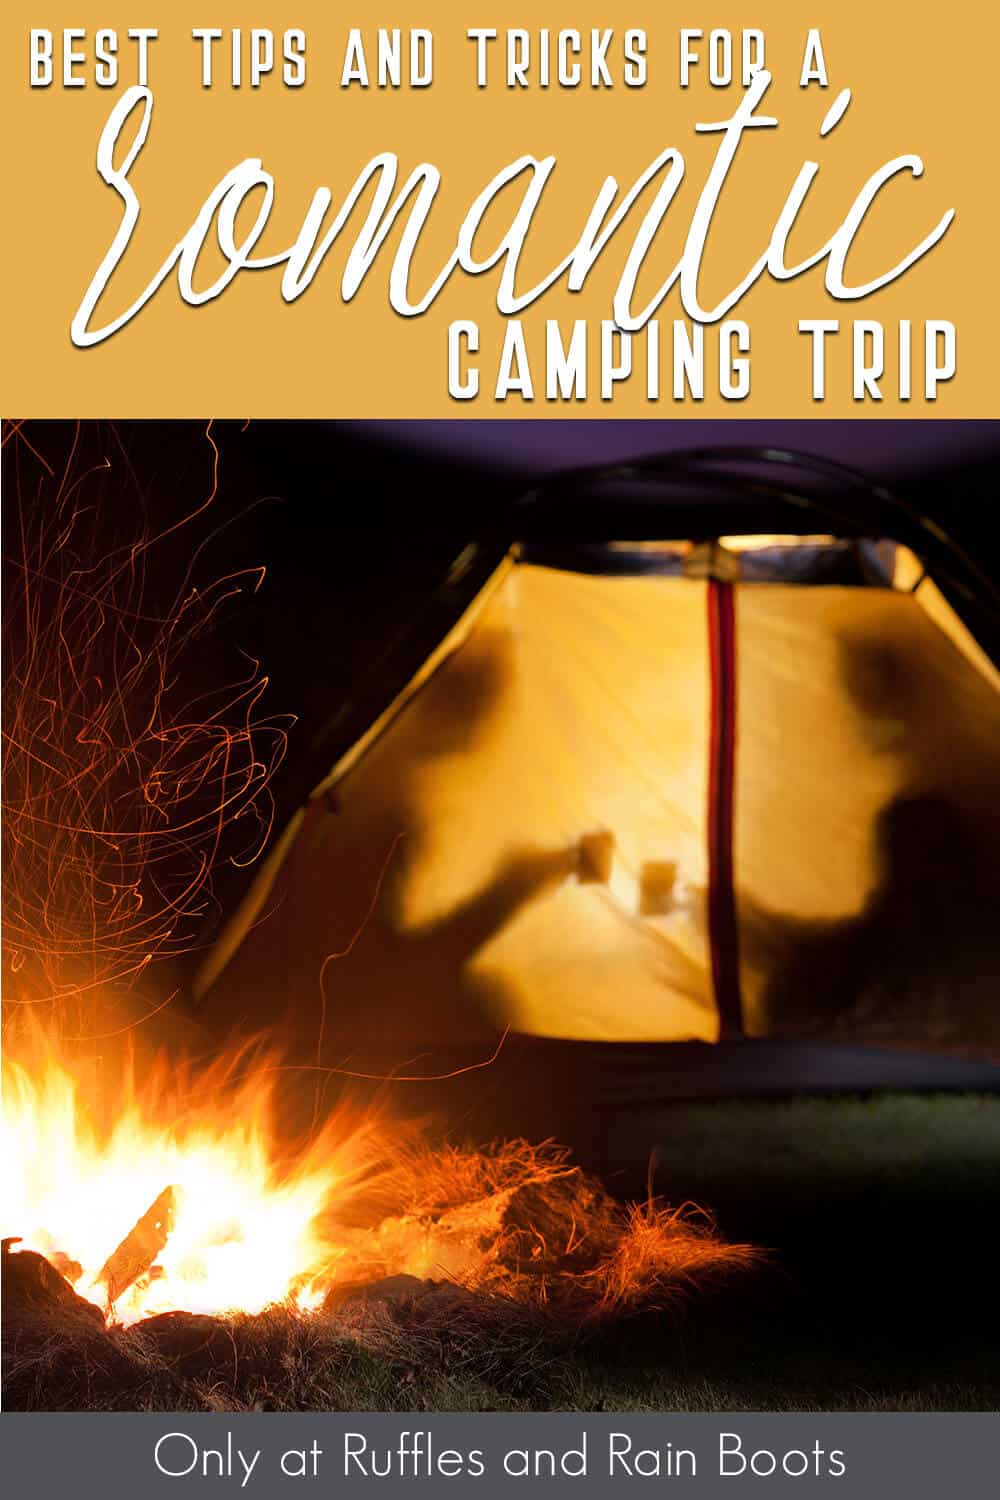 tips for a romantic camping trip with text which reads best tips and tricks for a romantic camping trip